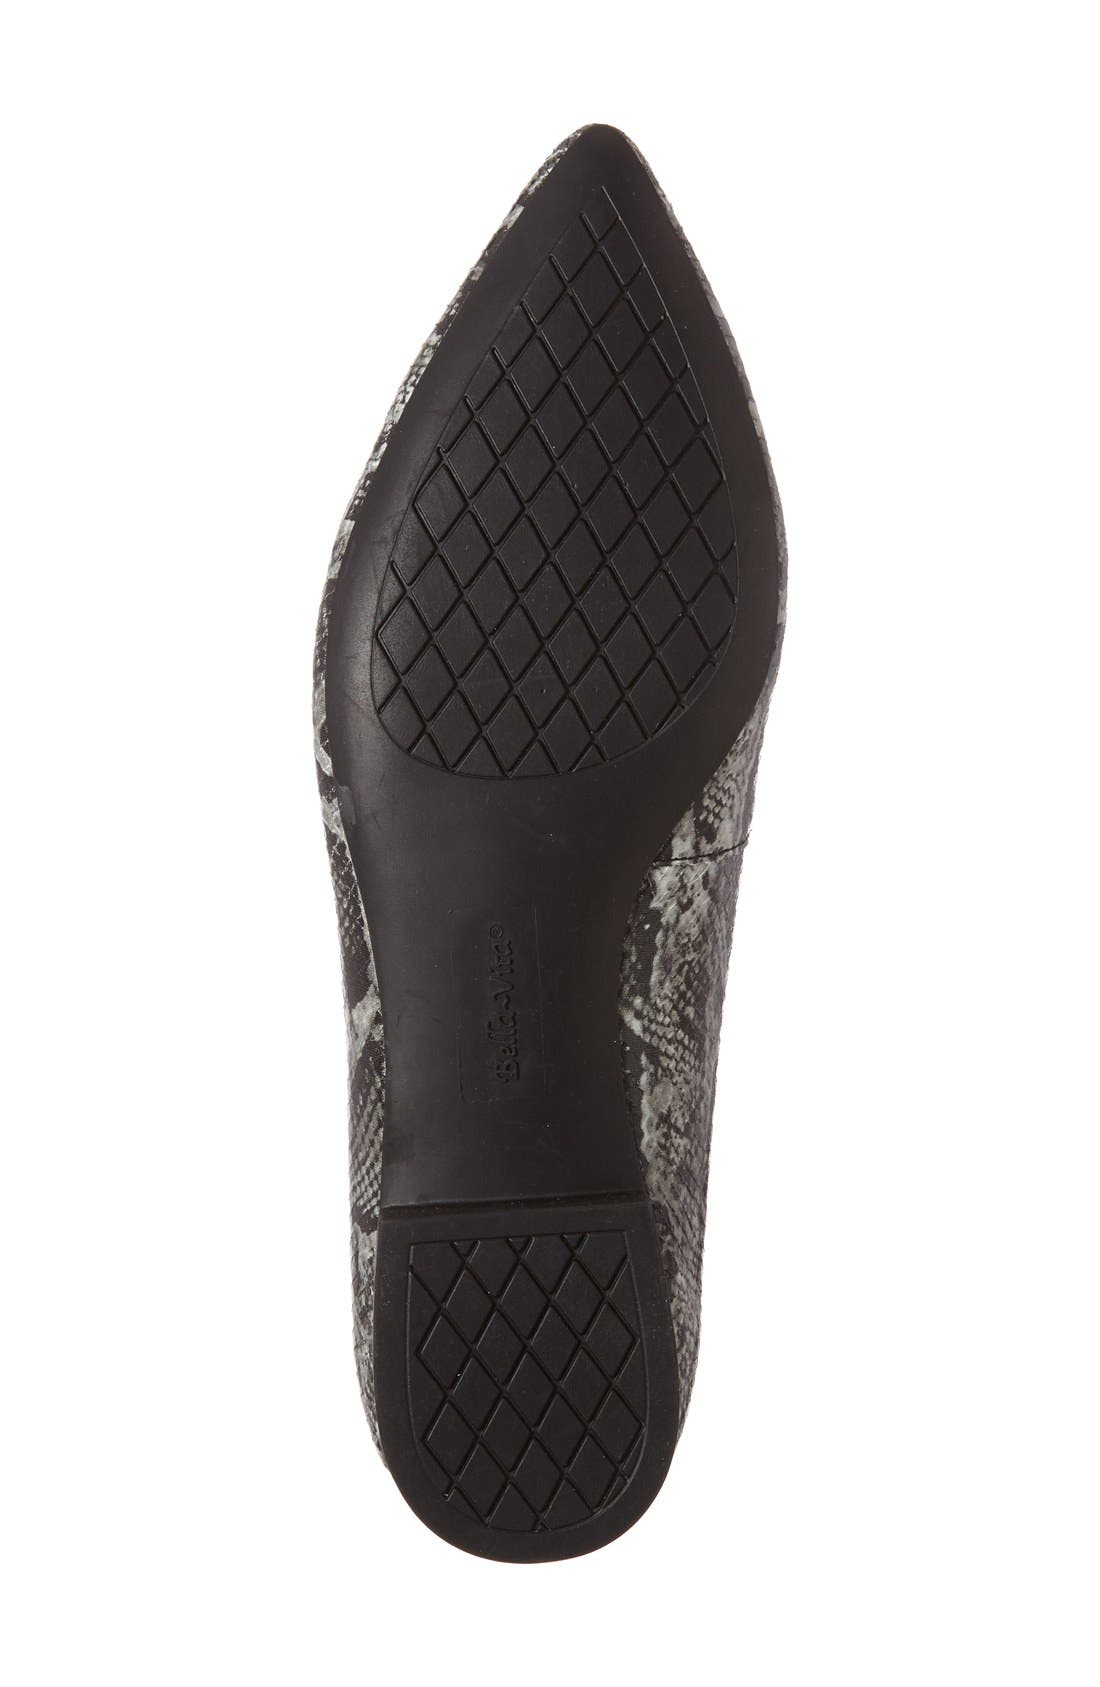 'Vivien' Pointy Toe Flat,                             Alternate thumbnail 4, color,                             Black/ White Snake Print